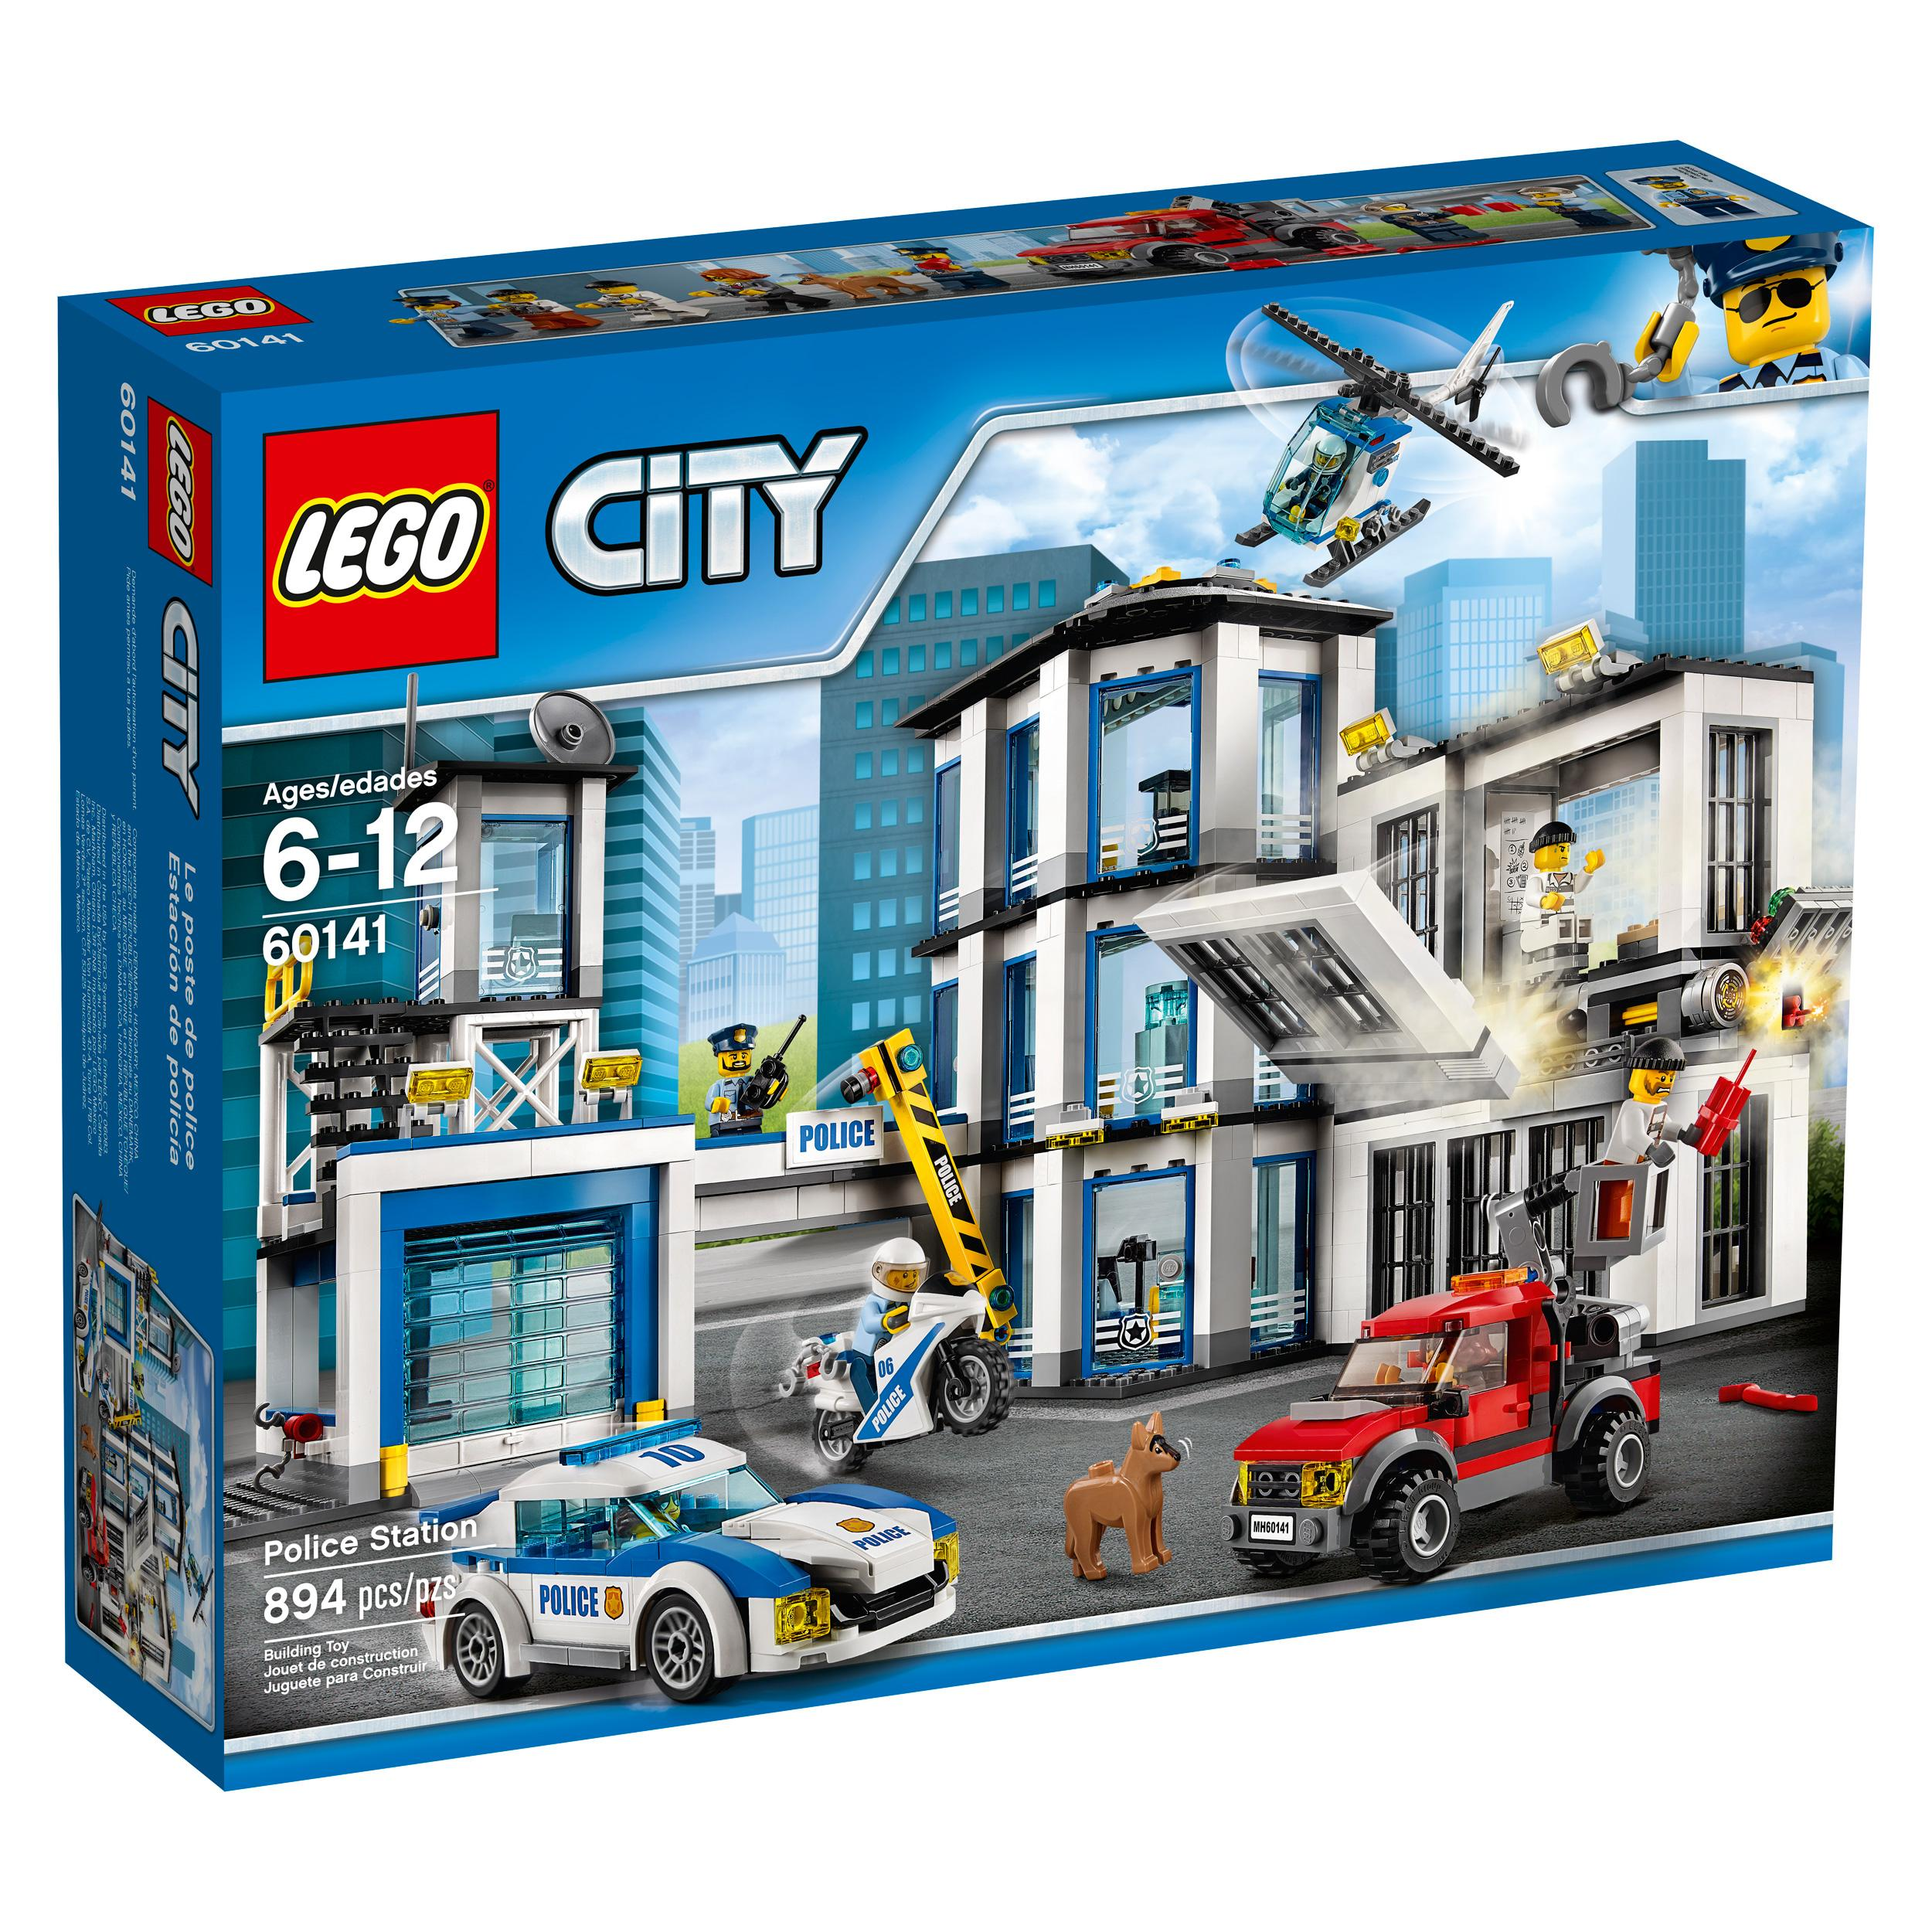 Lego City Toys : Amazon lego city police station cool toy for